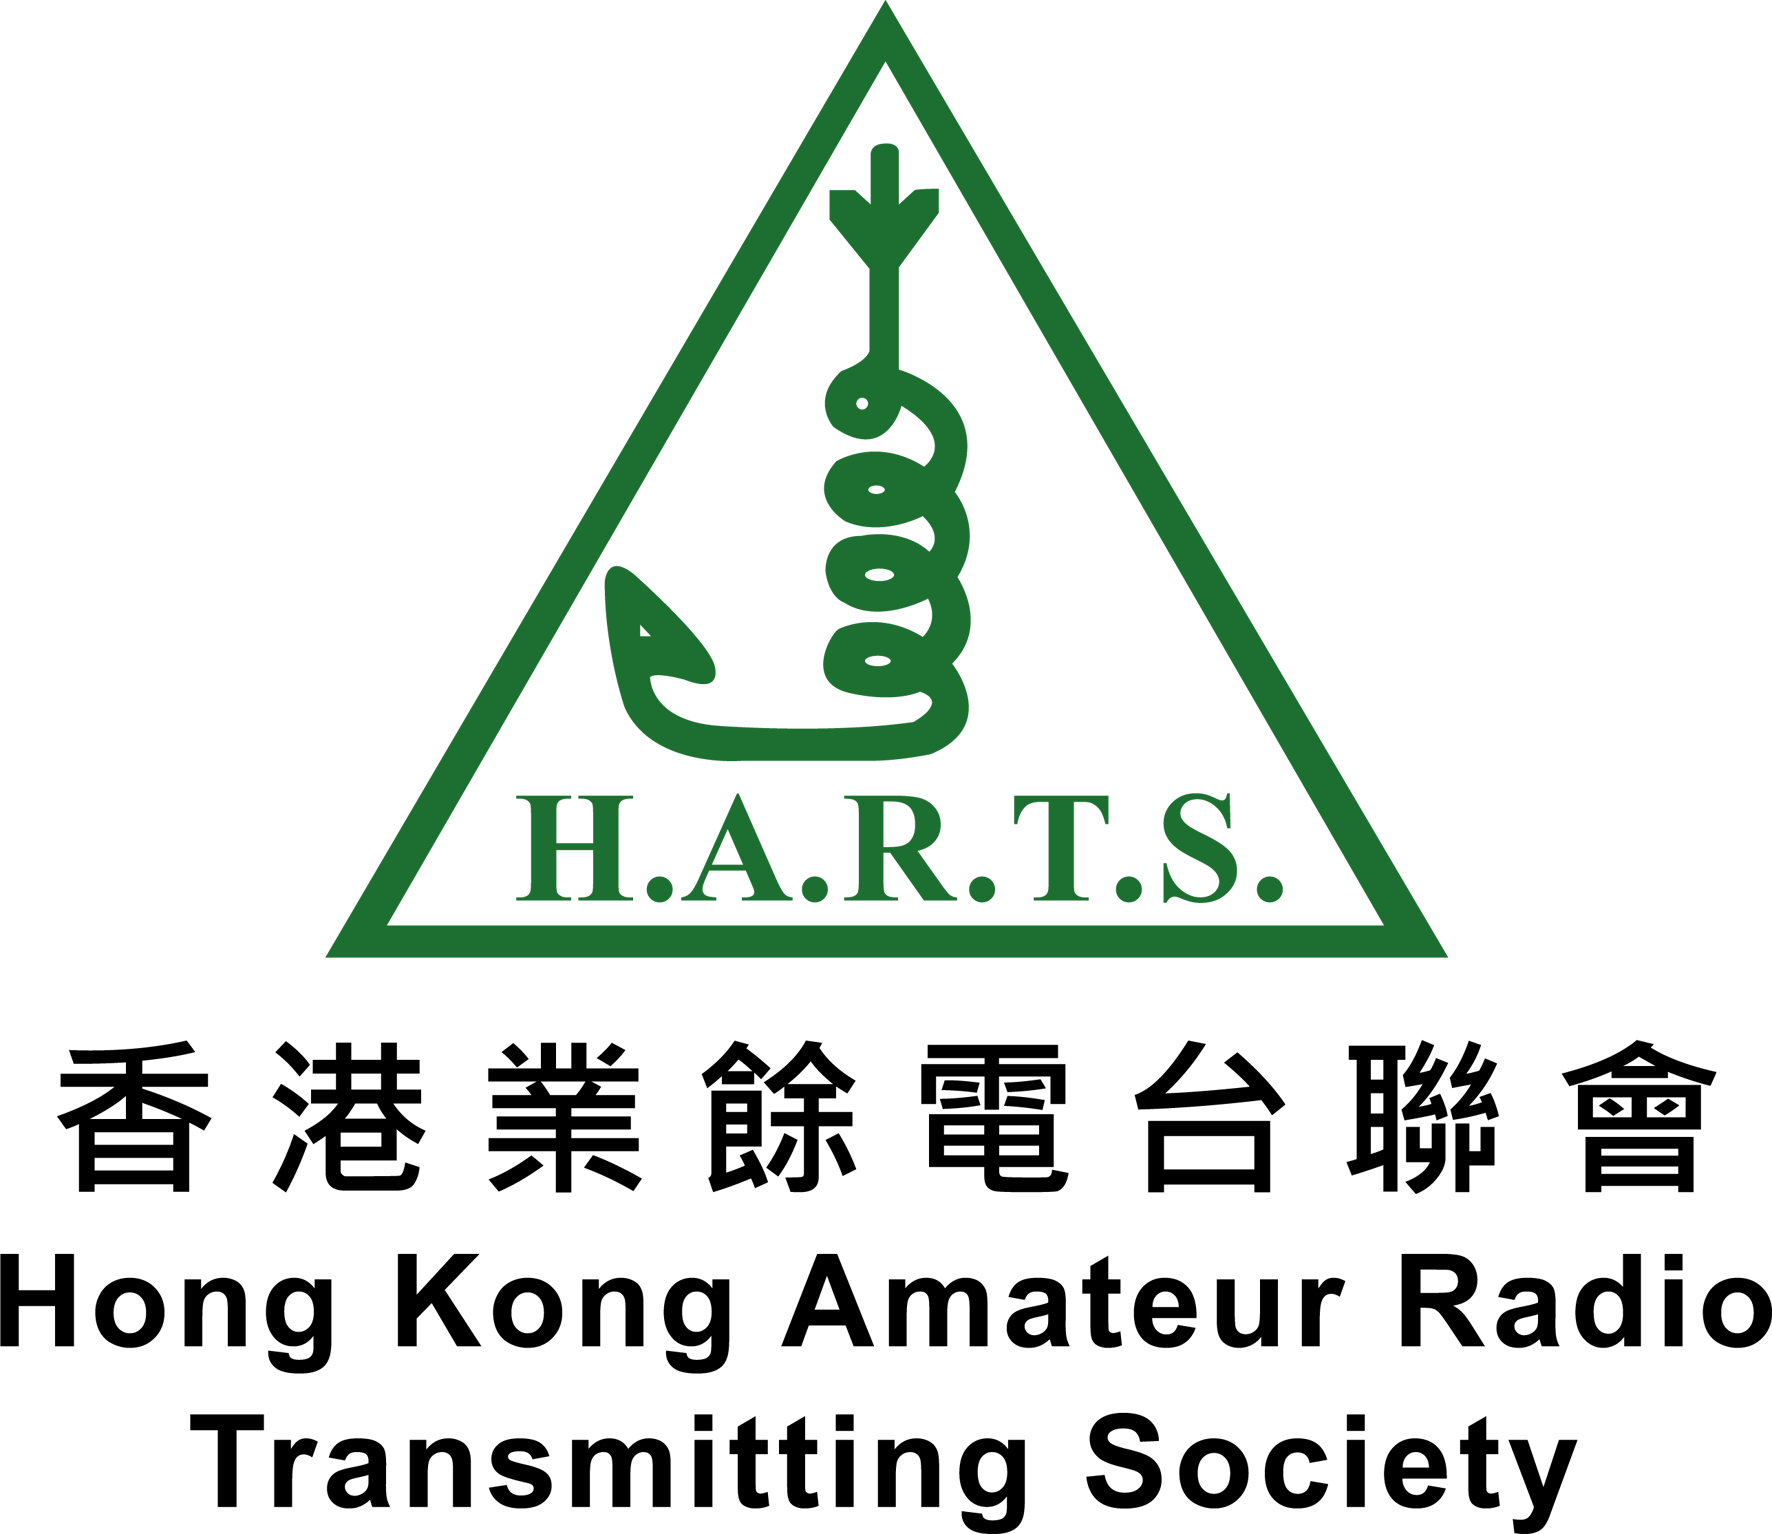 Hong Kong Amateur Radio Transmitting Society Limited